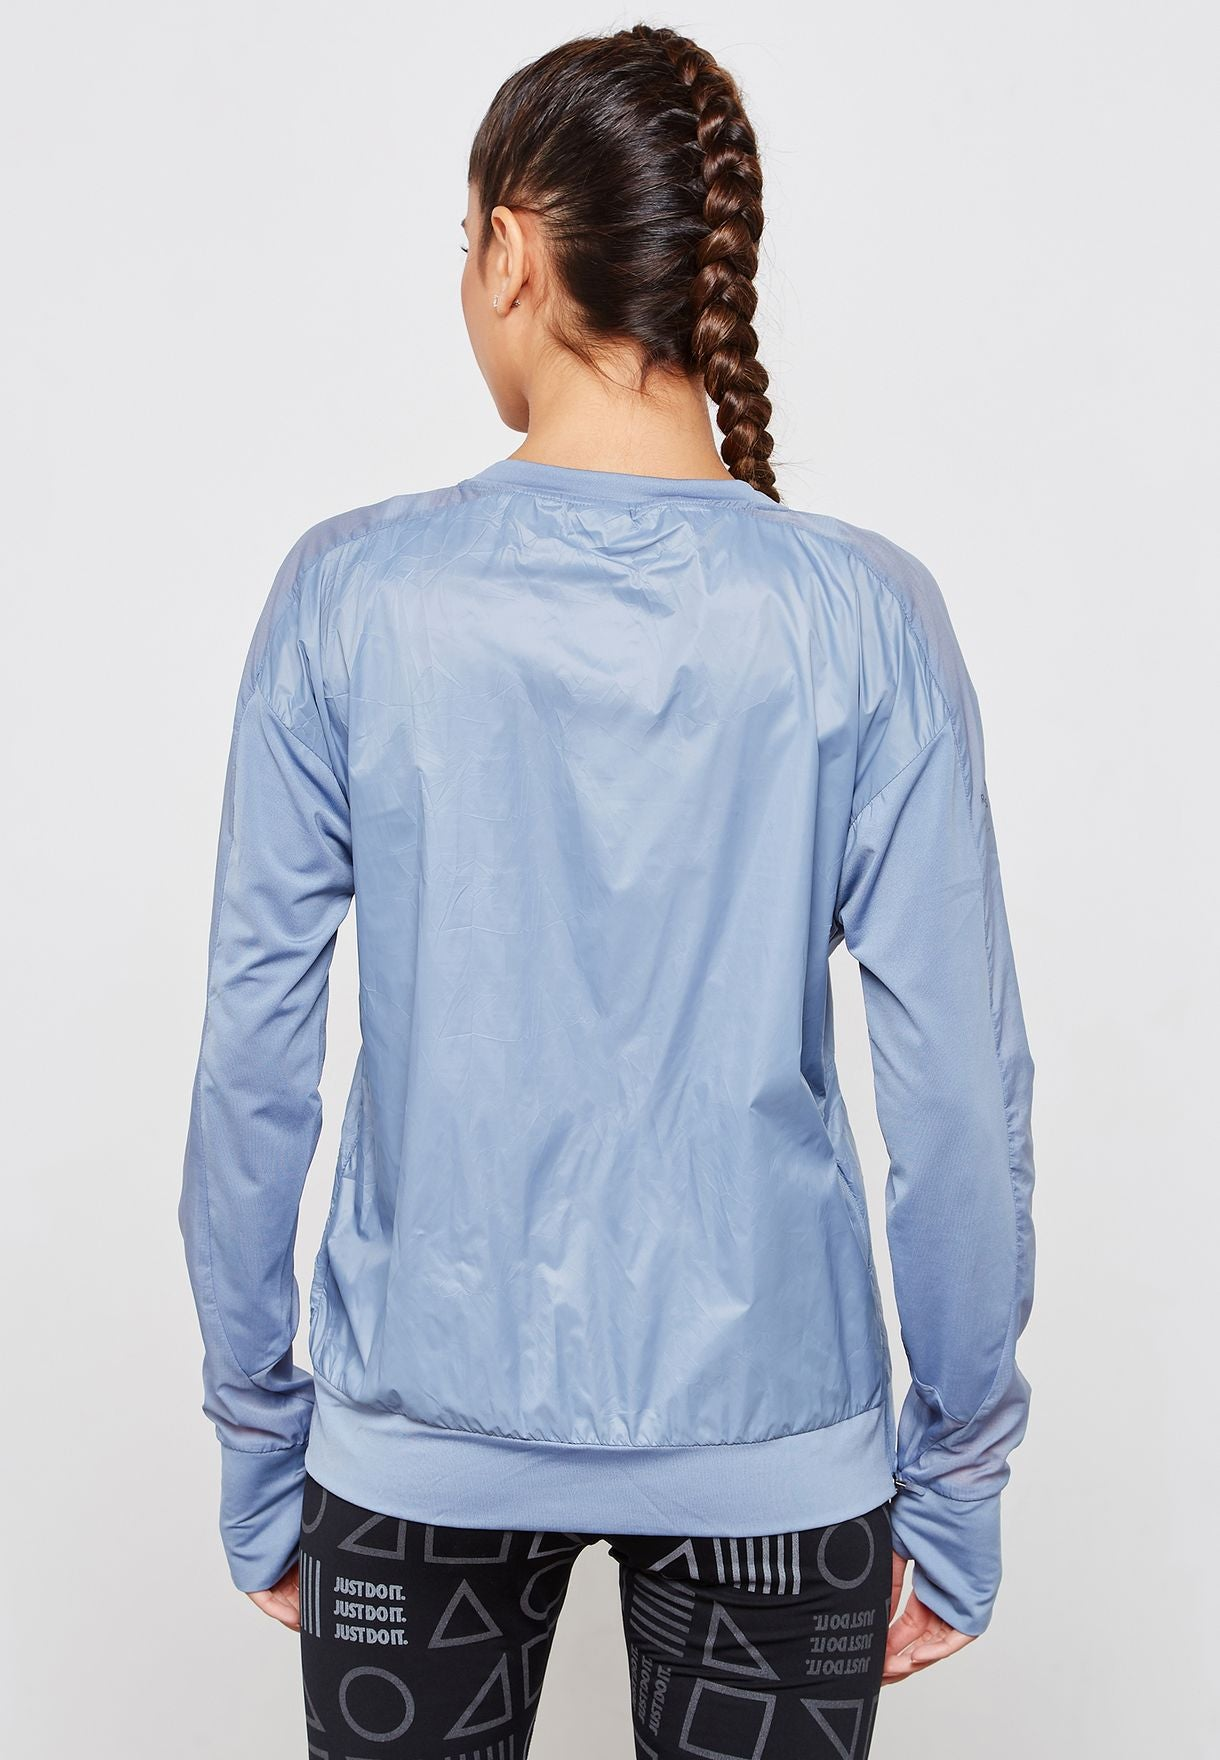 Womens NIKE RUN DIVISION Running Top *.    929128